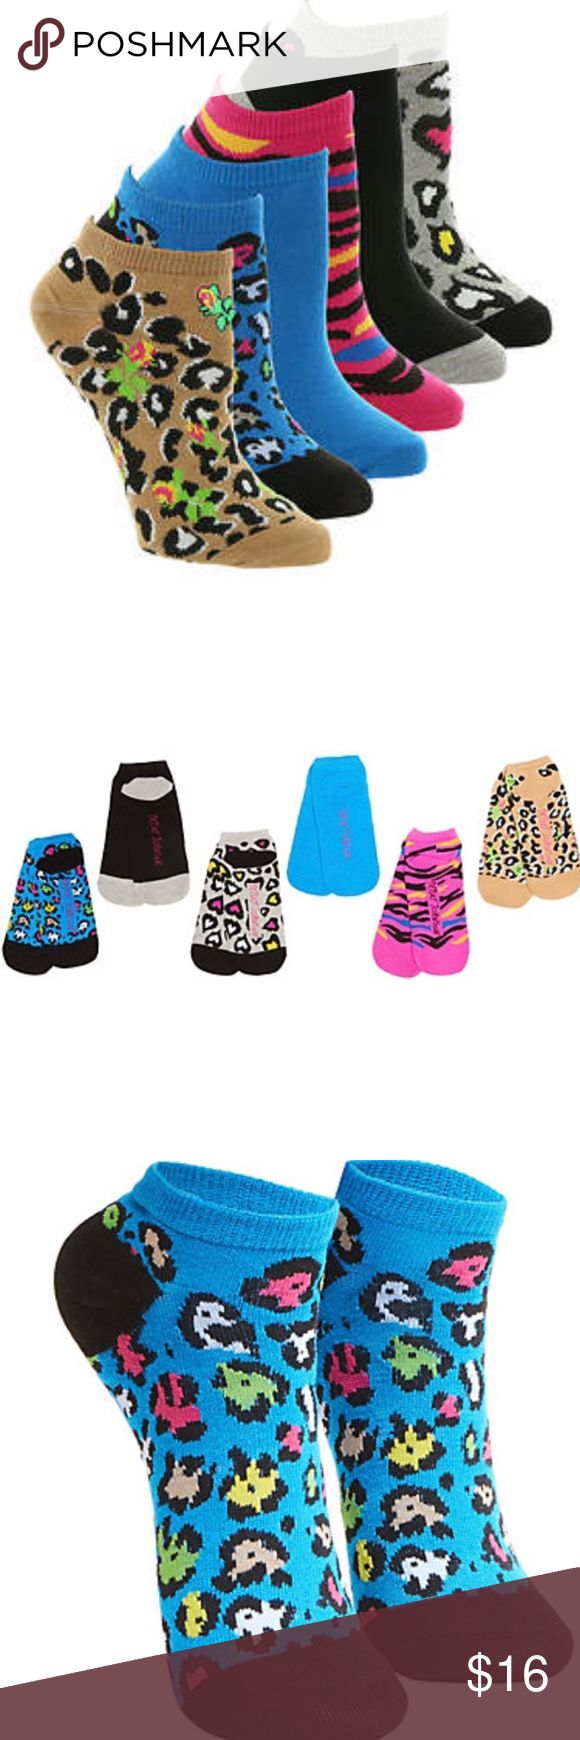 Betsey Johnson Wild Kingdom Low-Cut 6 Pack Socks Show off your wild side with this dynamic set of animal print socks. Their bold colors paired with wildcat prints are a perfect match.  Set of six Low cut silhouette Wildcat prints Knit Polyester/spandex Betsey Johnson Accessories Hosiery & Socks